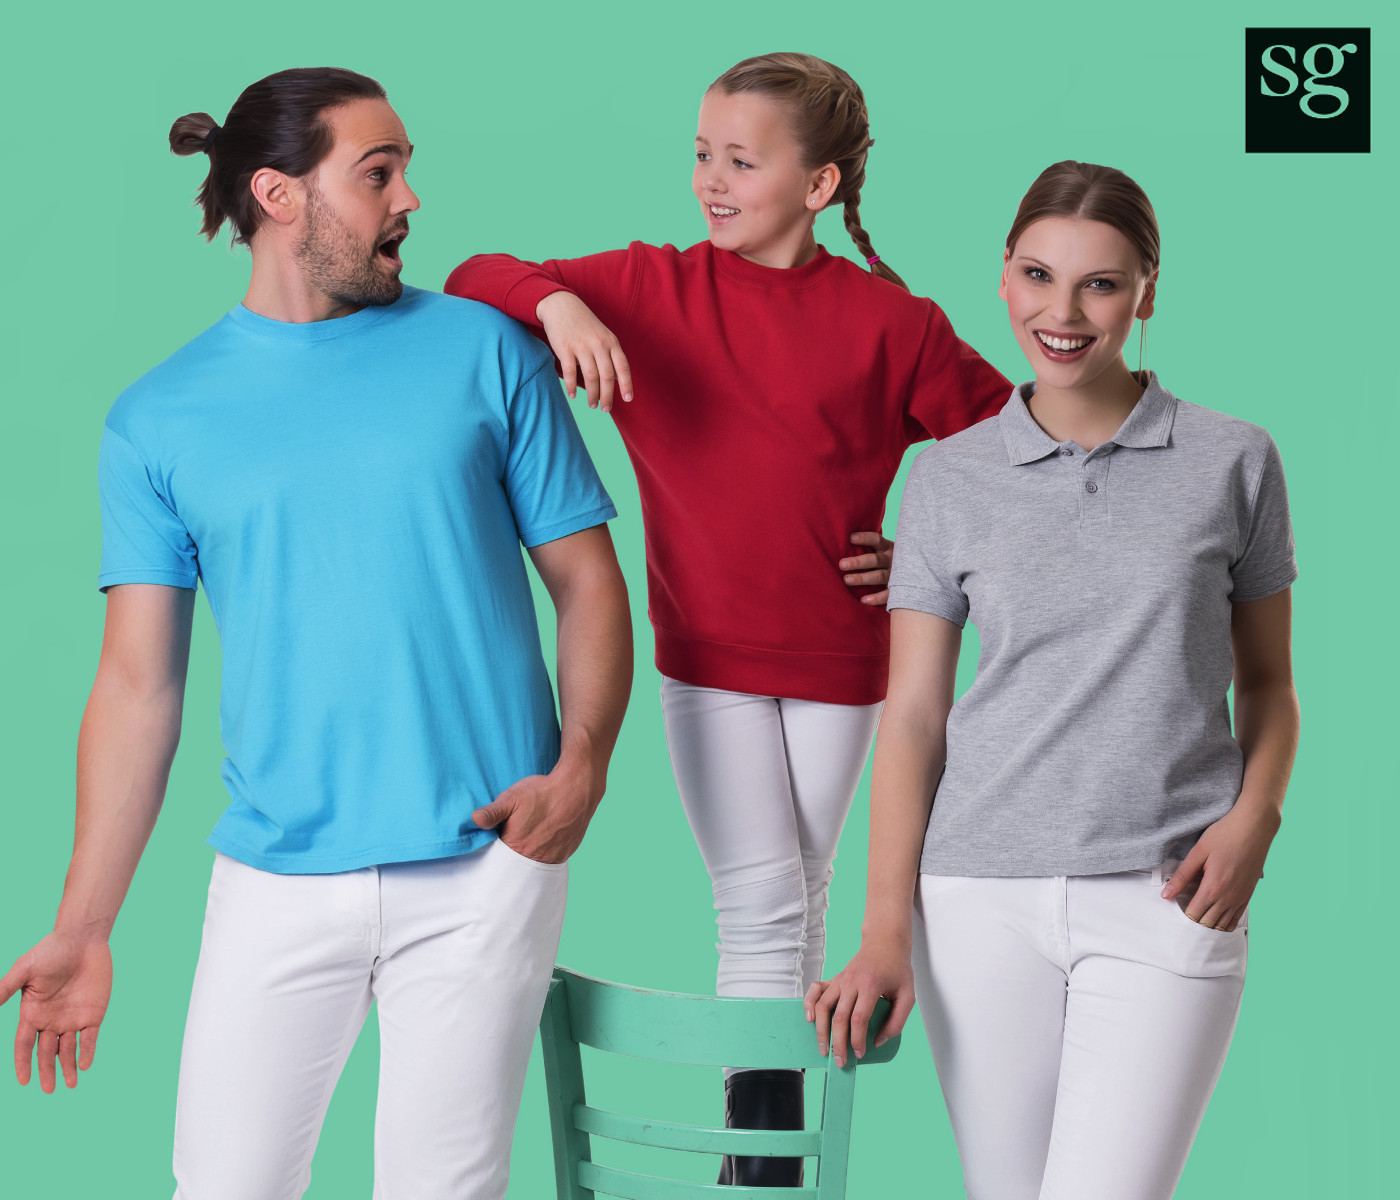 c93ad50884b T-shirts, Poloshirts, Sweats, Fleece and Softshell available for Men, Women  & Kids in a full range of colours and sizes from S to 5XL!